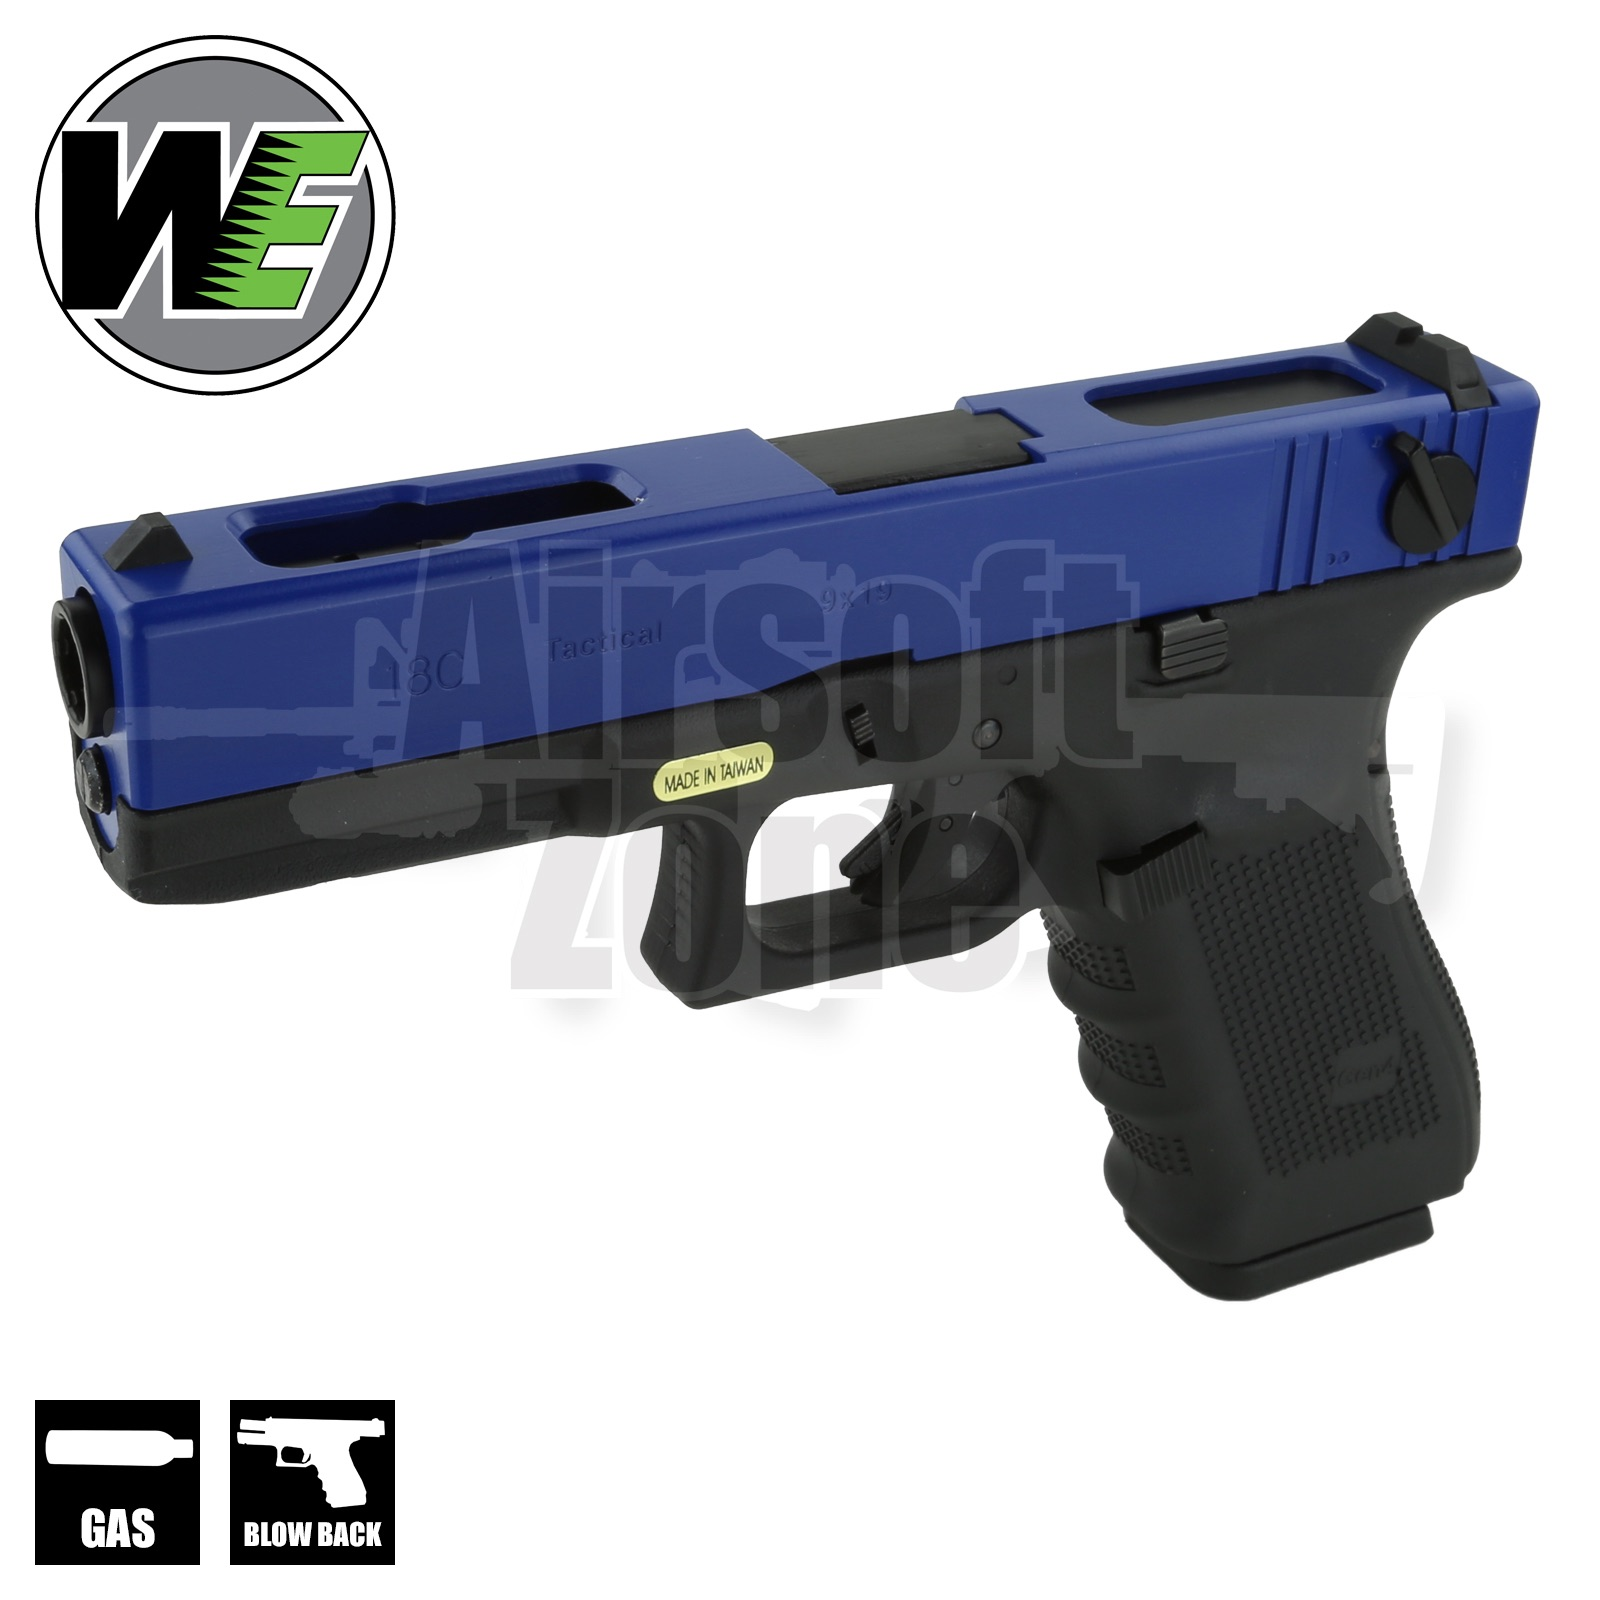 EU18C Gen4 Full Auto Pistol Two Tone Blue GBB WE